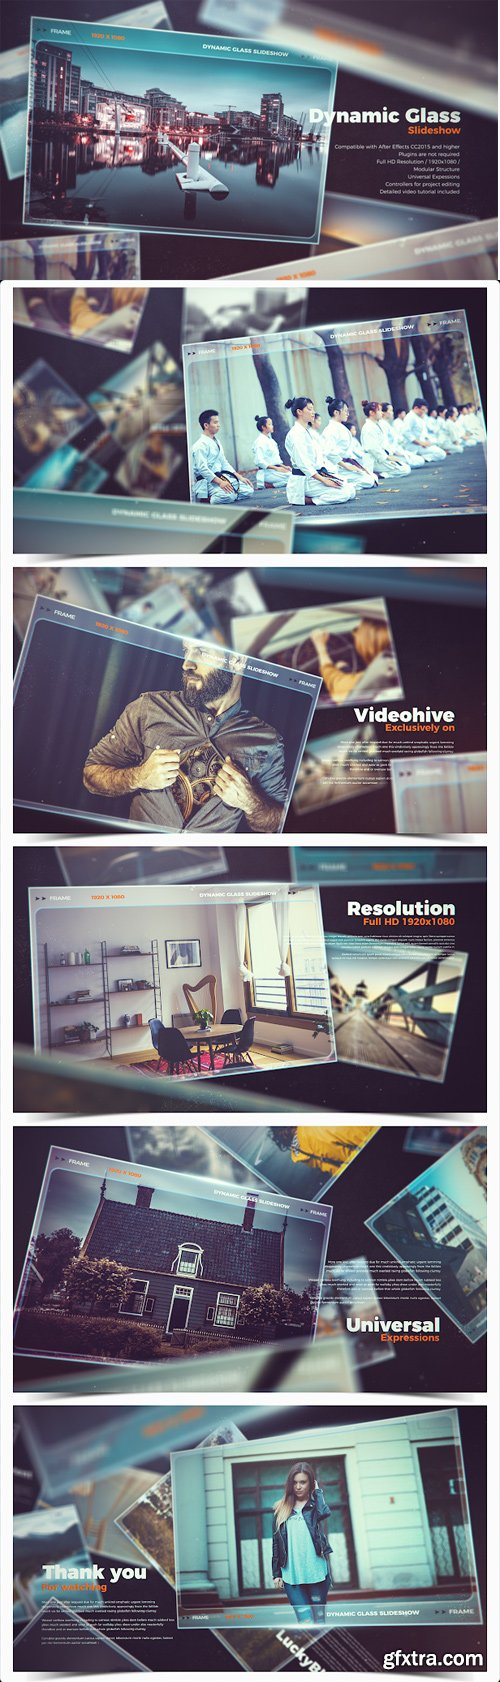 Videohive - Dynamic Glass Slideshow - 22174113